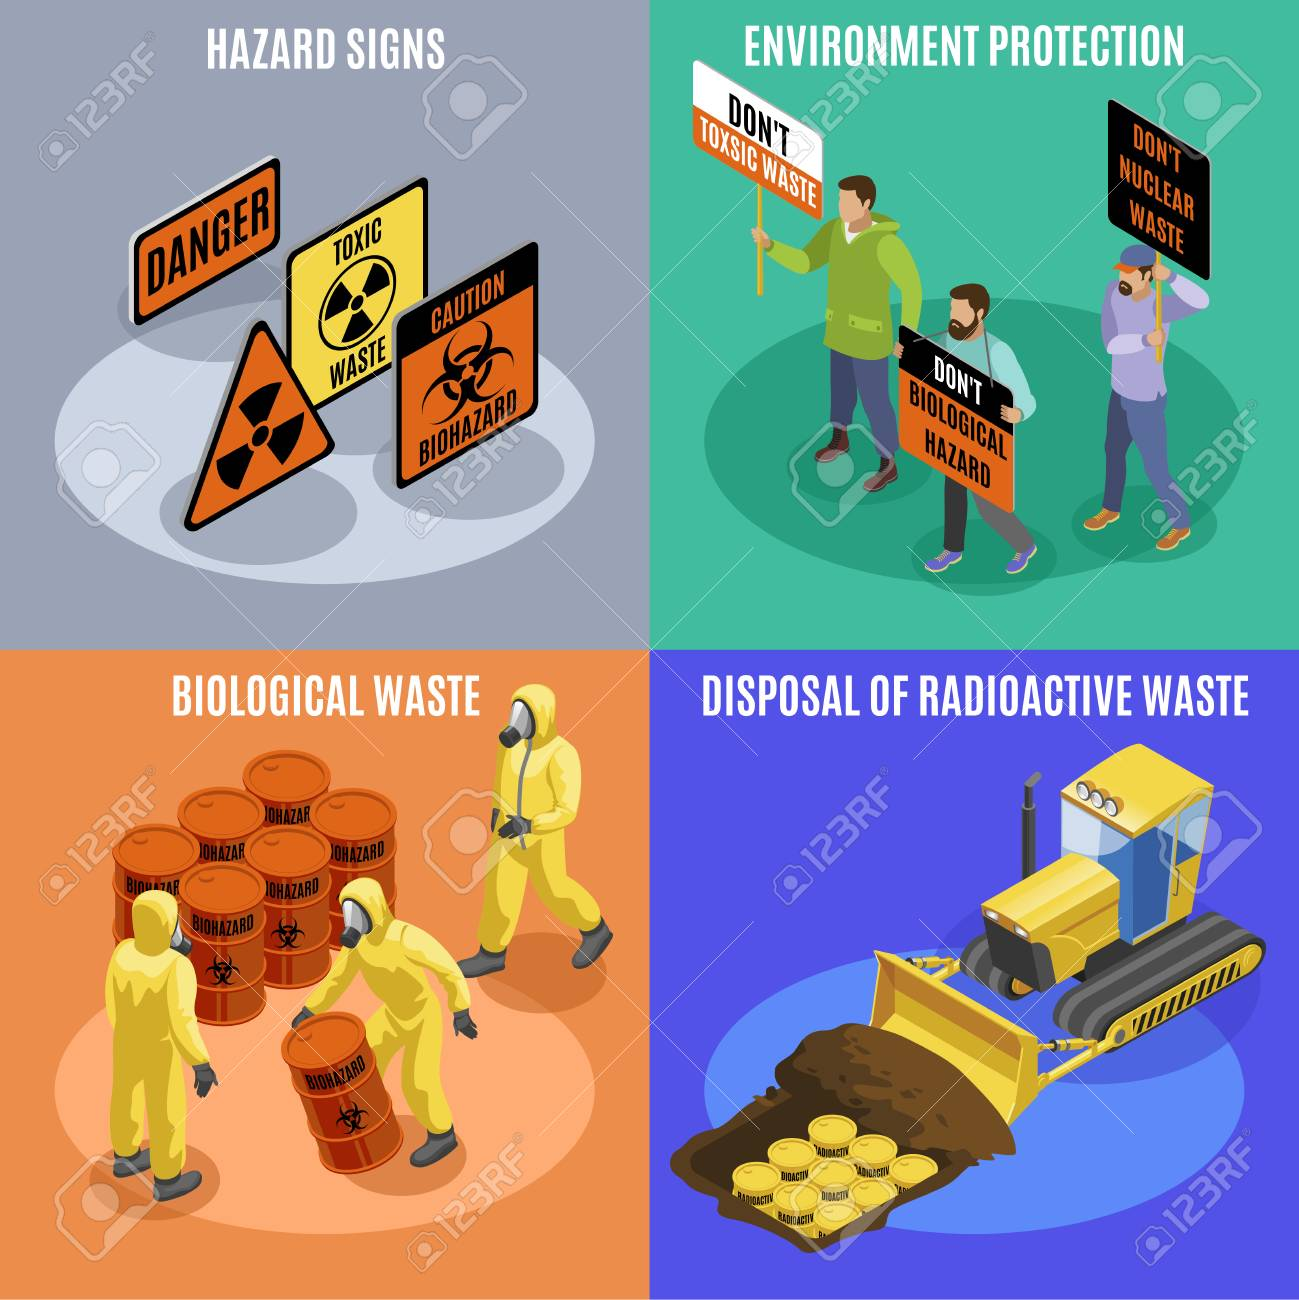 Toxic biological and radioactive waste 4 isometric icons concept with environment protection activists hazard signs vector illustration - 116679554